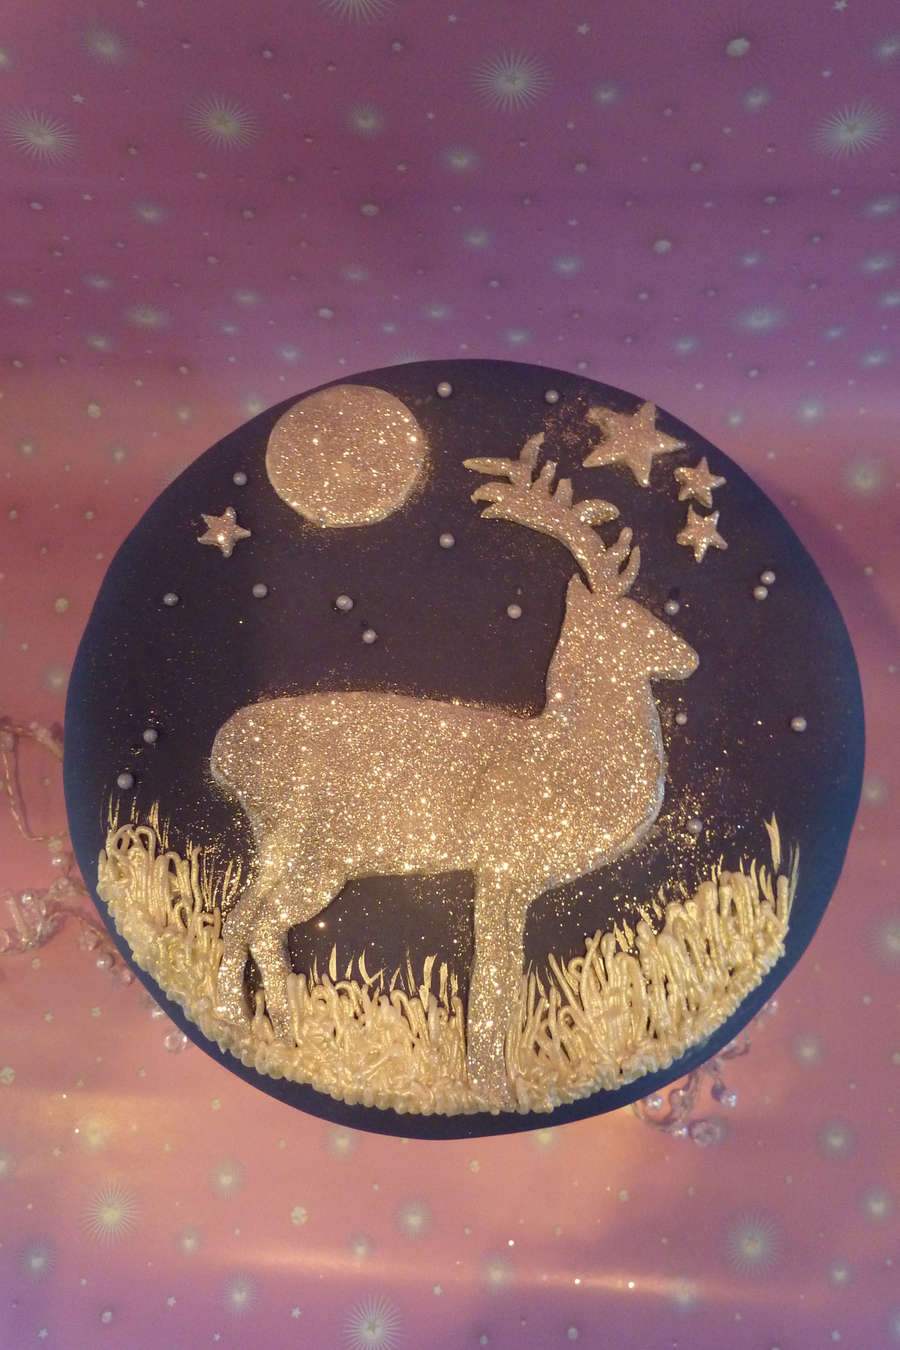 We Went For A Bit Of Sparkle on Cake Central